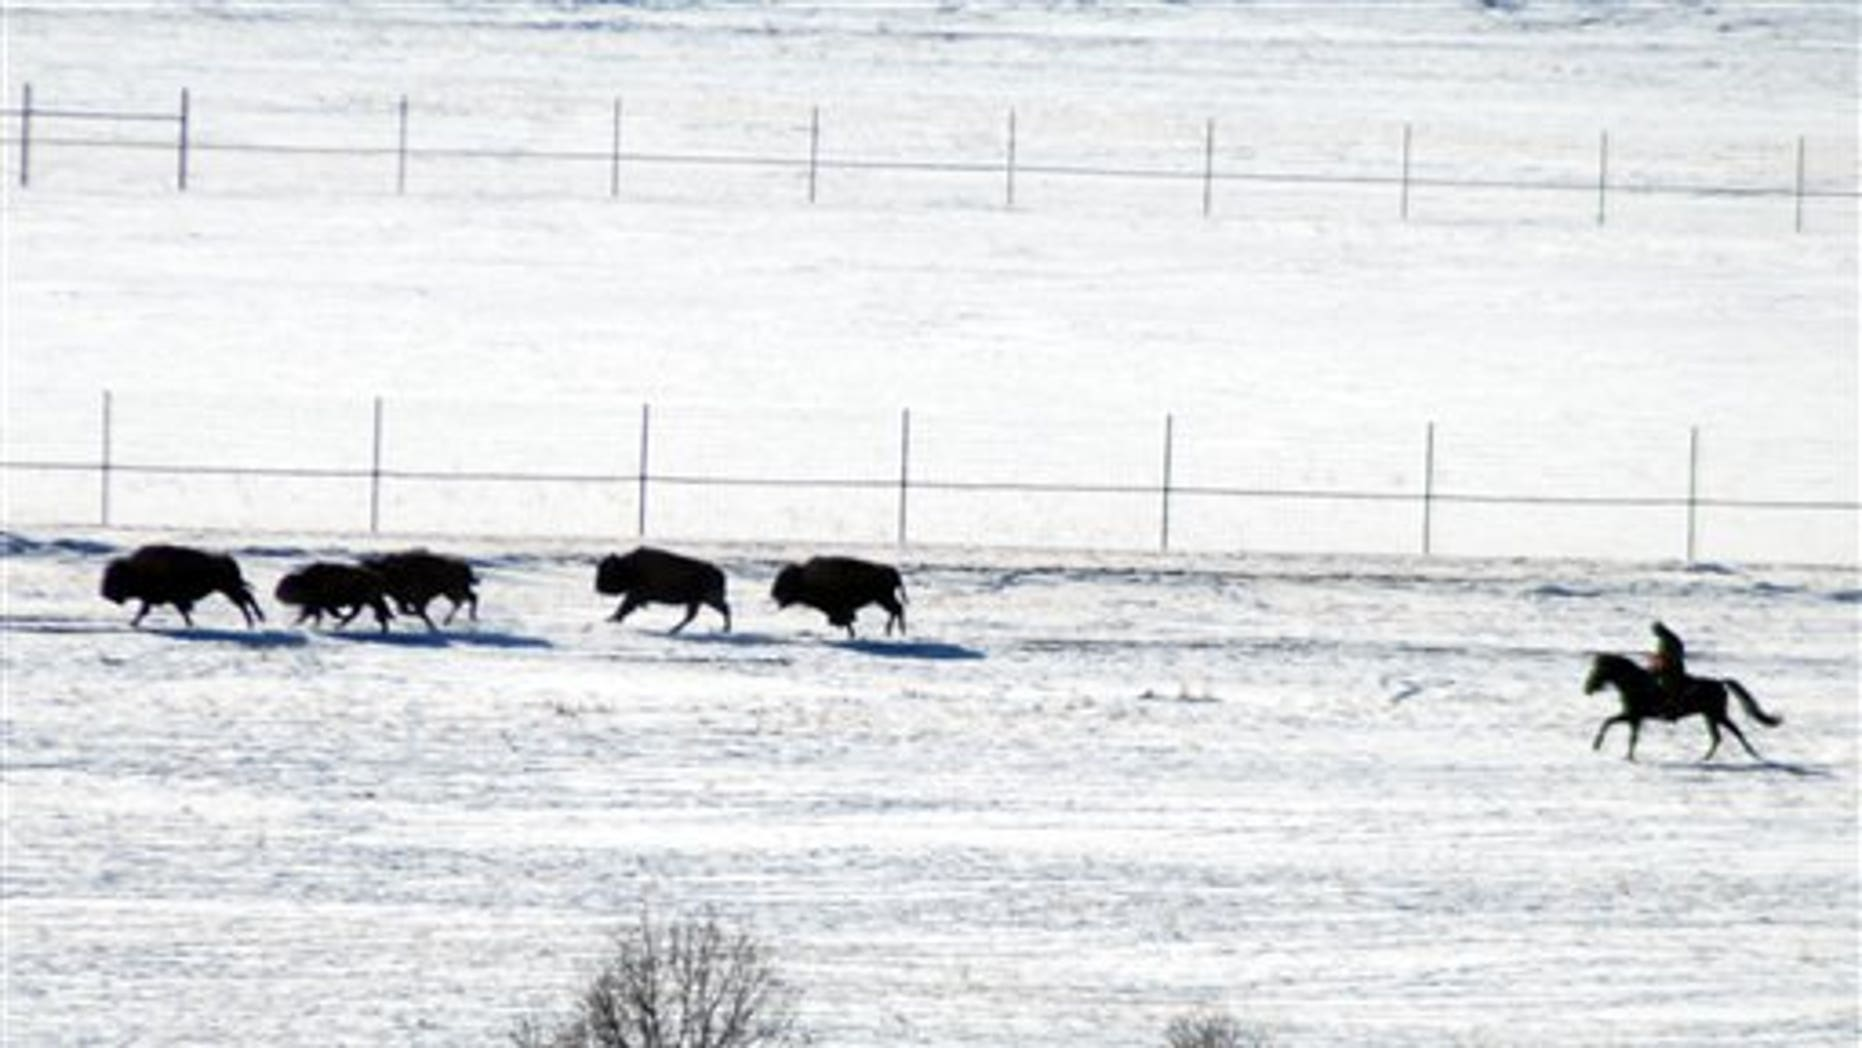 This image provided by the Buffalo Field Campaign shows livestock agents driving bison toward corrals inside Yellowstone National Park, Mont., for disease testing, Feb. 1, 2011. Animals that test positive for exposure to the disease Brucellosis were to be sent to slaughter in coming days.